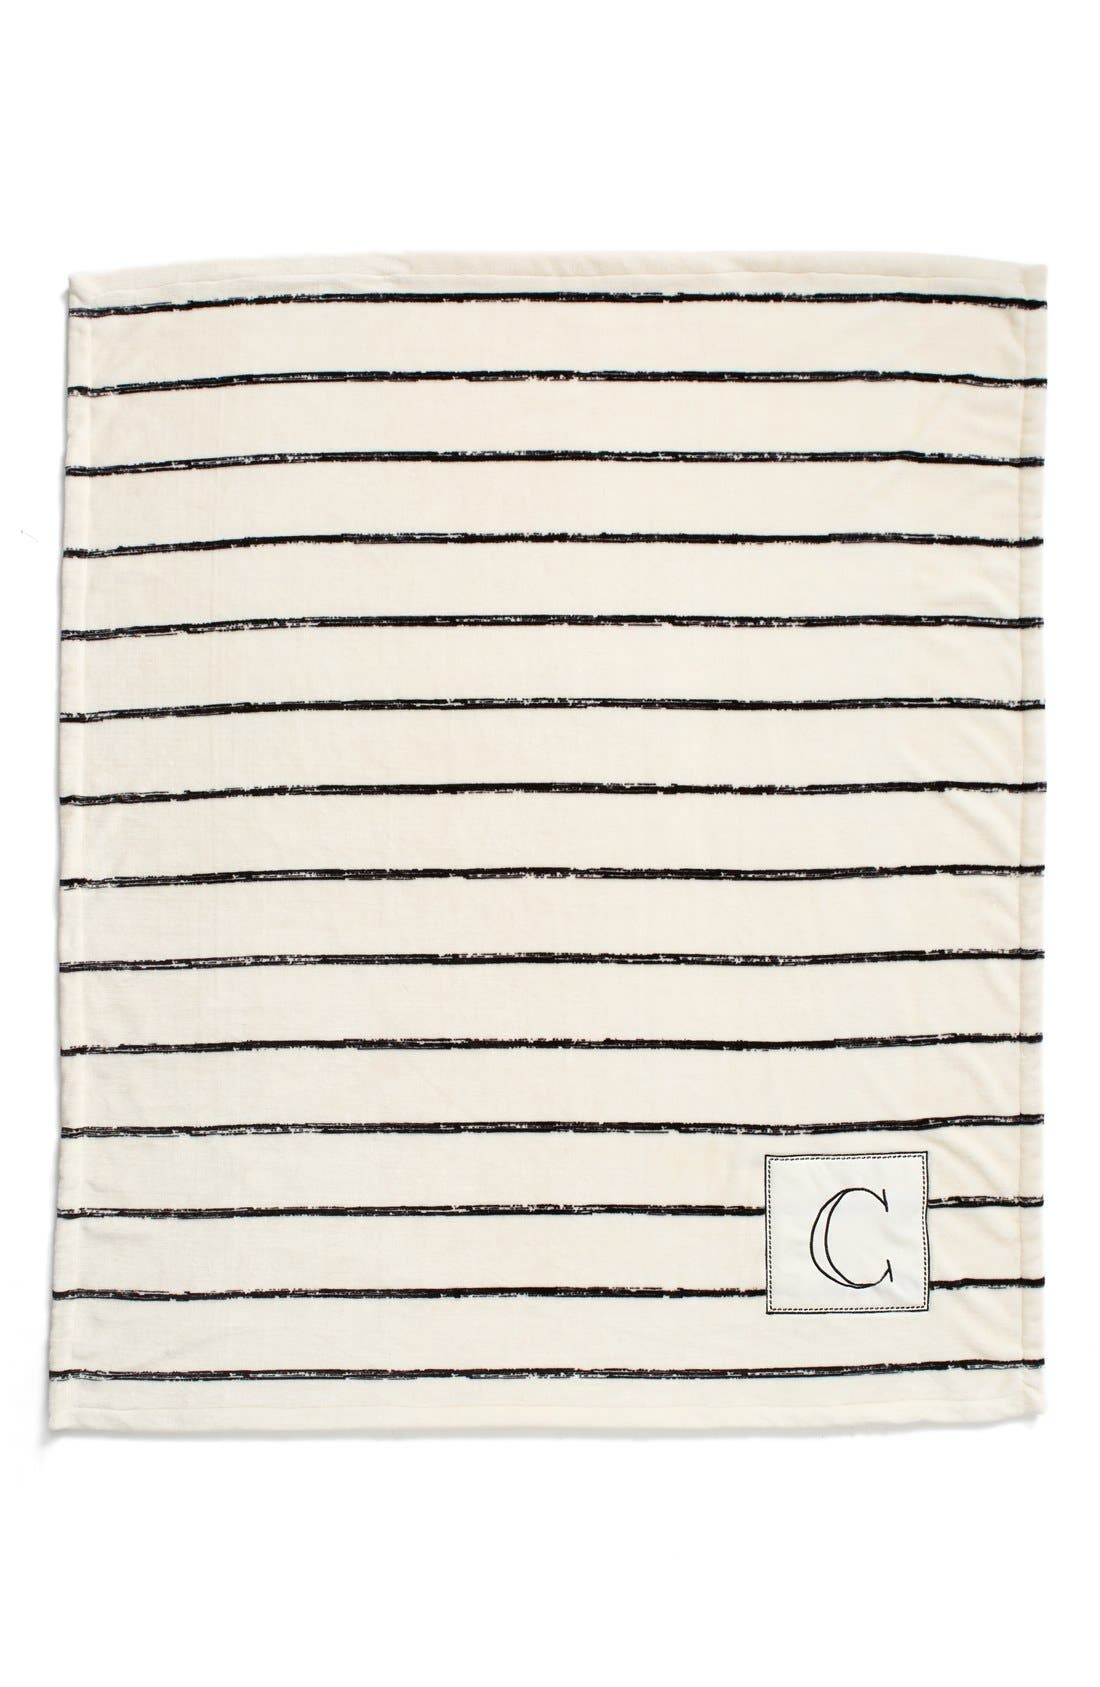 Plush Stripe Monogram Throw Blanket,                             Alternate thumbnail 2, color,                             001